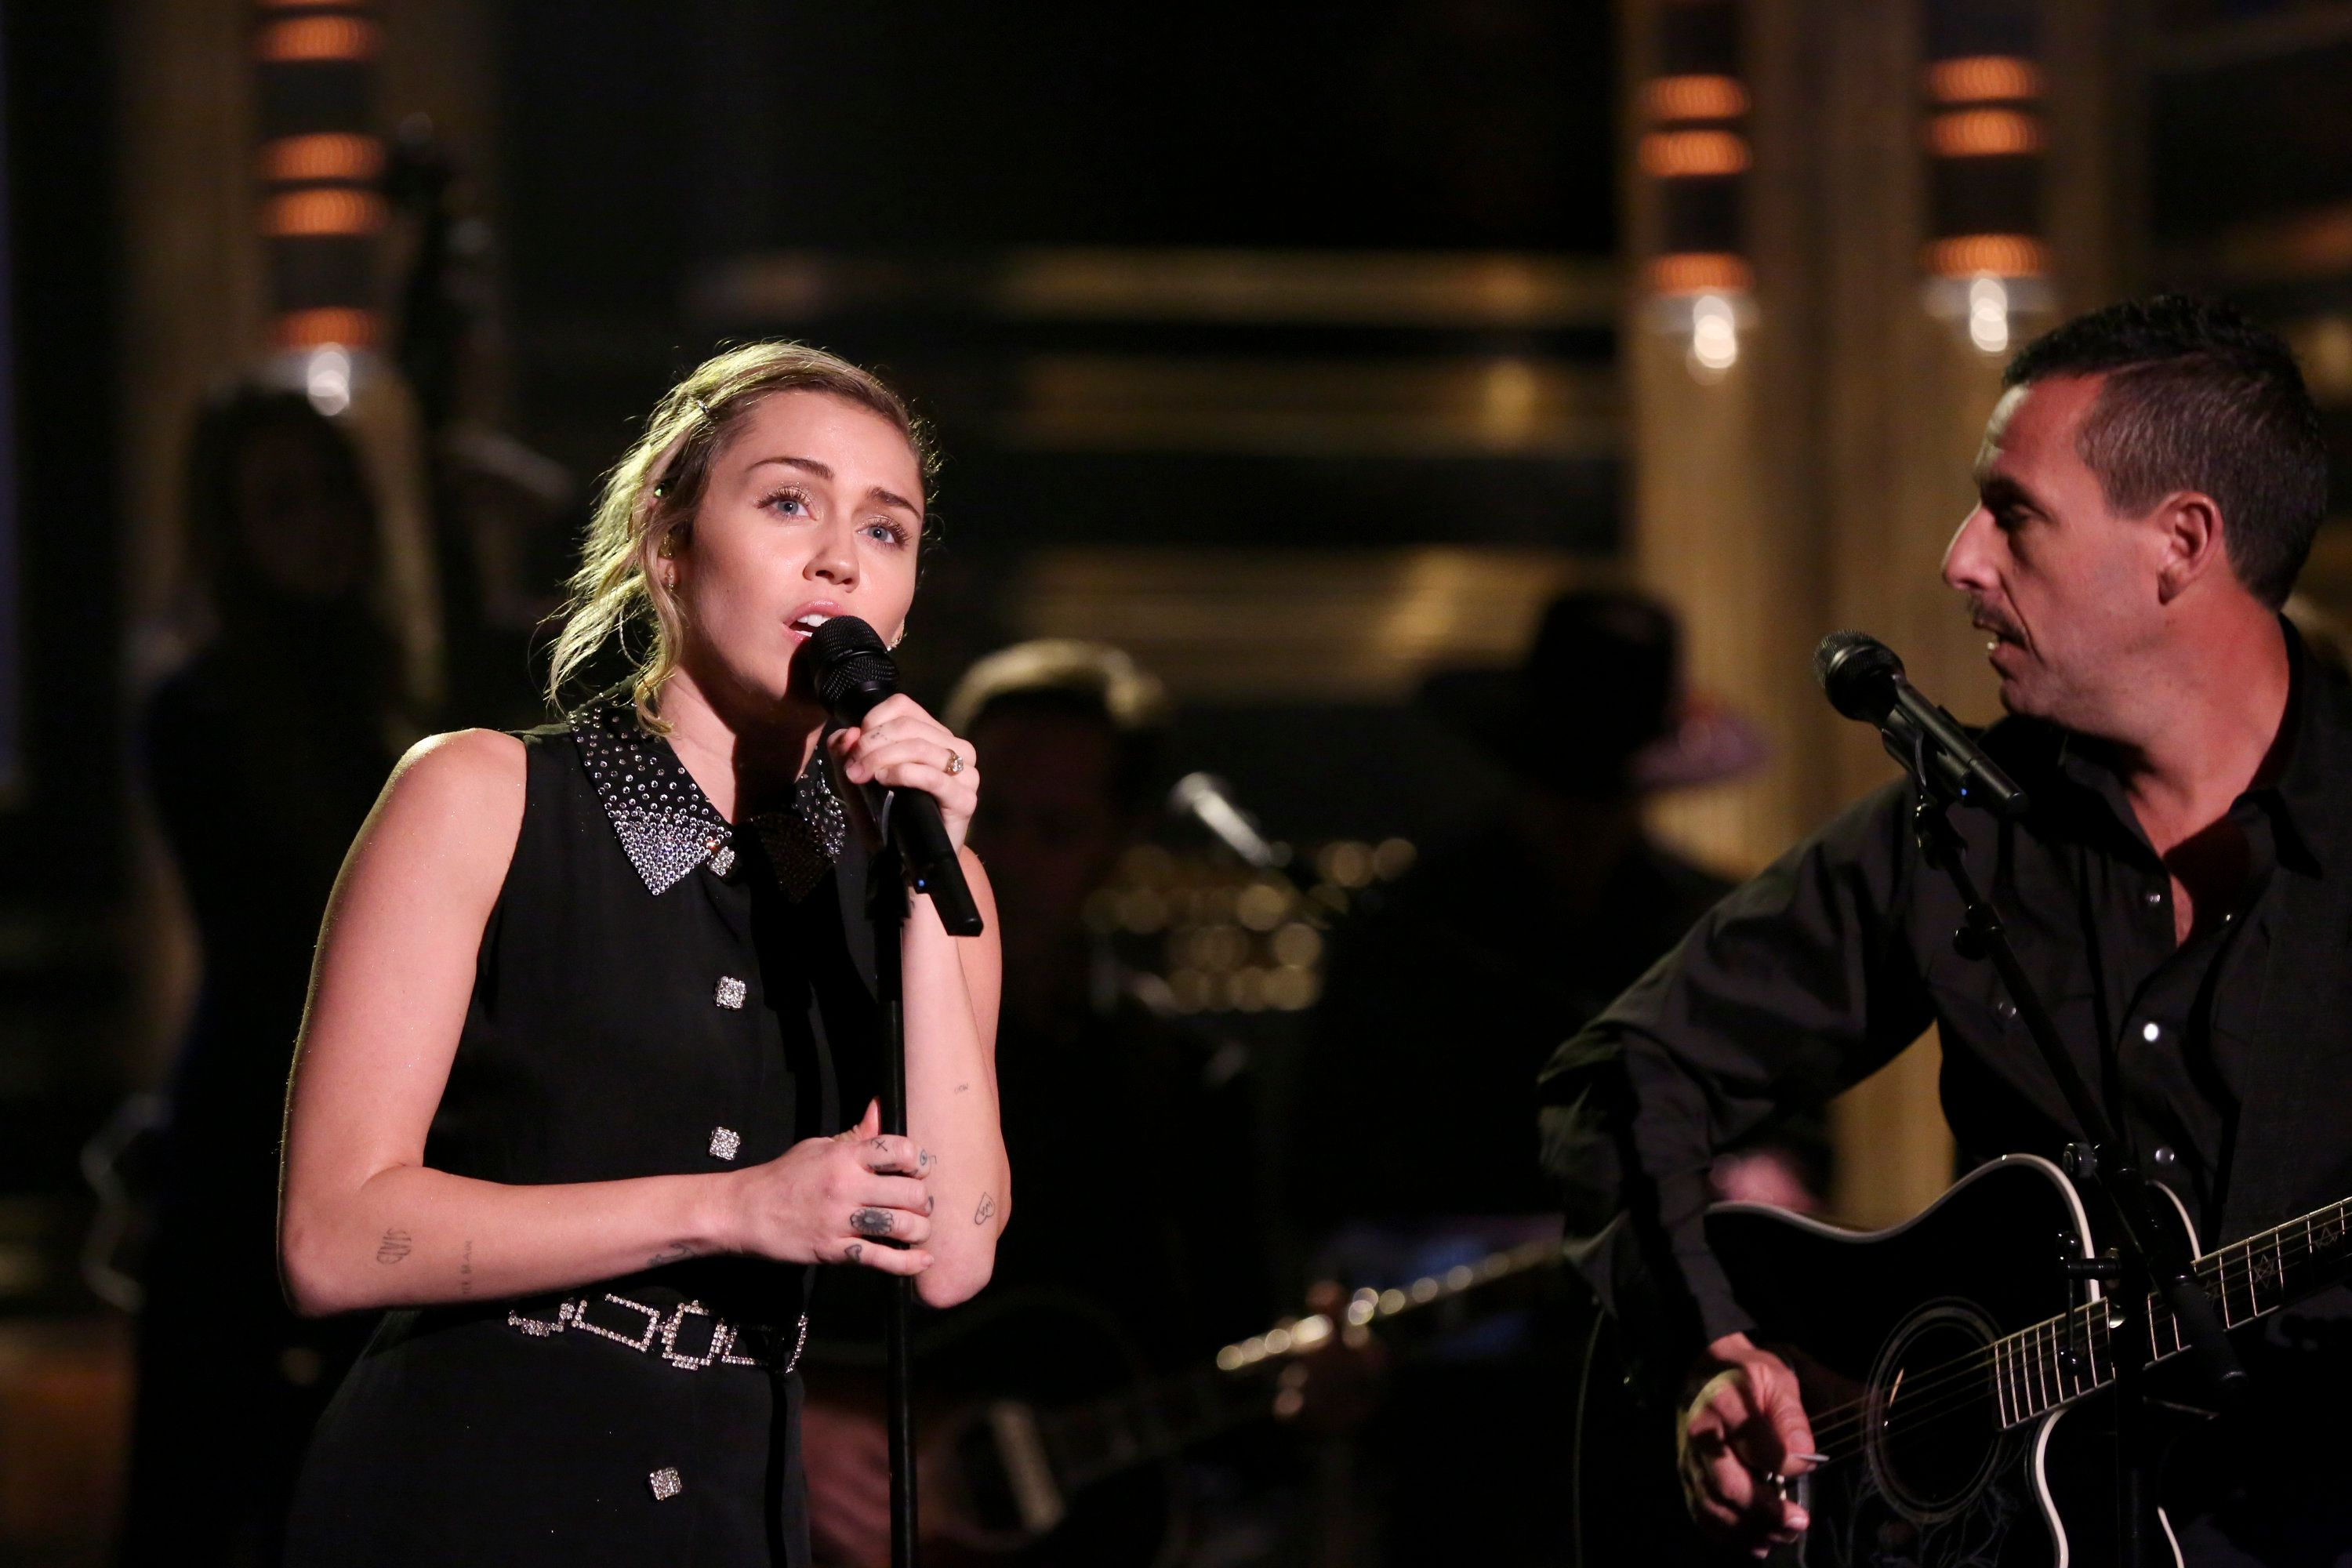 THE TONIGHT SHOW STARRING JIMMY FALLON -- Episode 0749 -- Pictured: (l-r) Singer/Songwriter Miley Cyrus and Actor Adam Sandler perform 'No Freedom' on October 2, 2017 -- (Photo by: Andrew Lipovsky/NBC/NBCU Photo Bank via Getty Images)